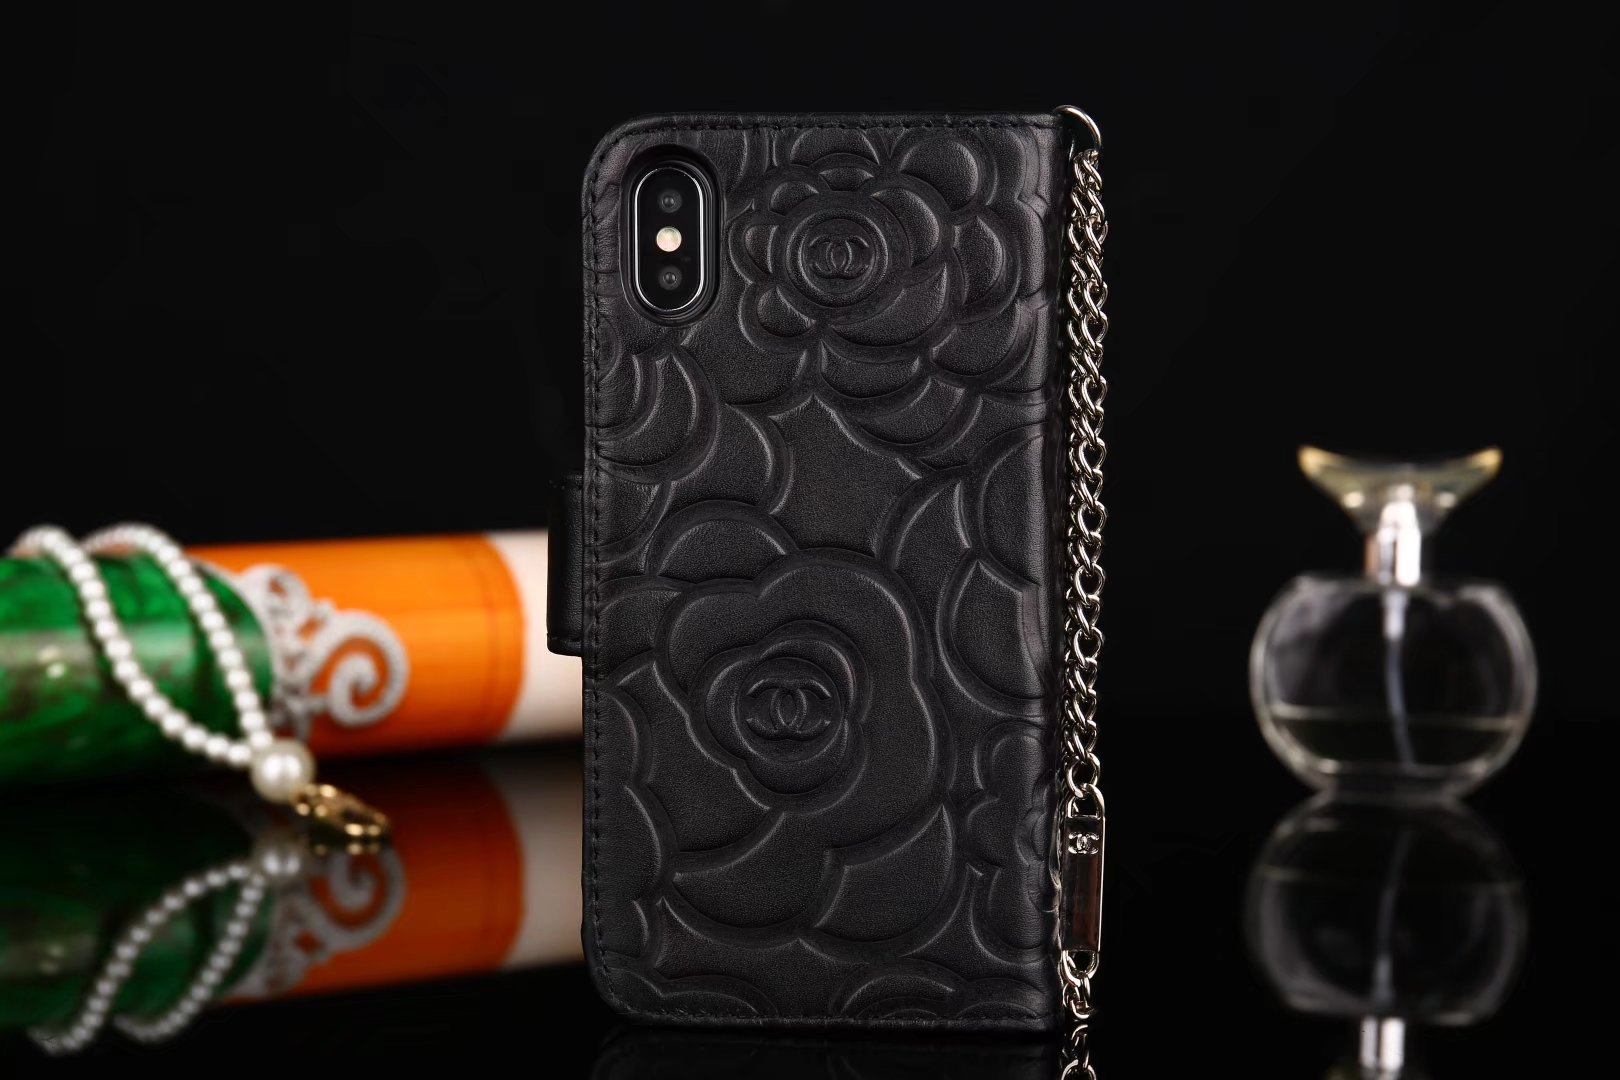 günstige iphone hüllen iphone filzhülle Chanel iphone X hüllen hülle leder iphone X iphone X werbung iphone nachfolger iphone caX X Xlbst gestalten holz hülle iphone X handy cover eigenes foto